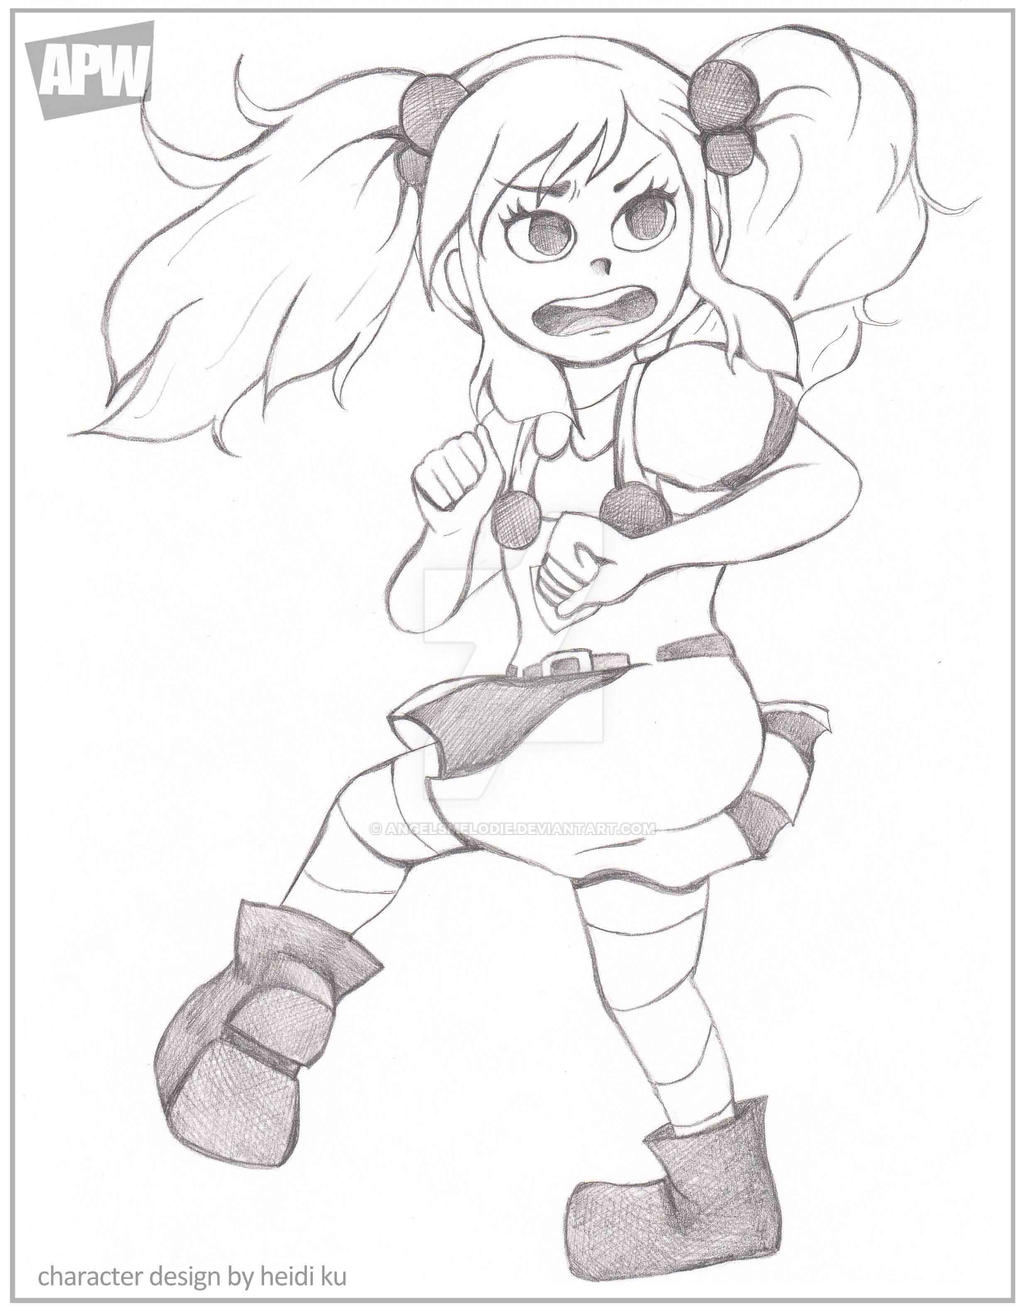 Apw Character Design Contest : Apw character design action pose by angelsmelodie on